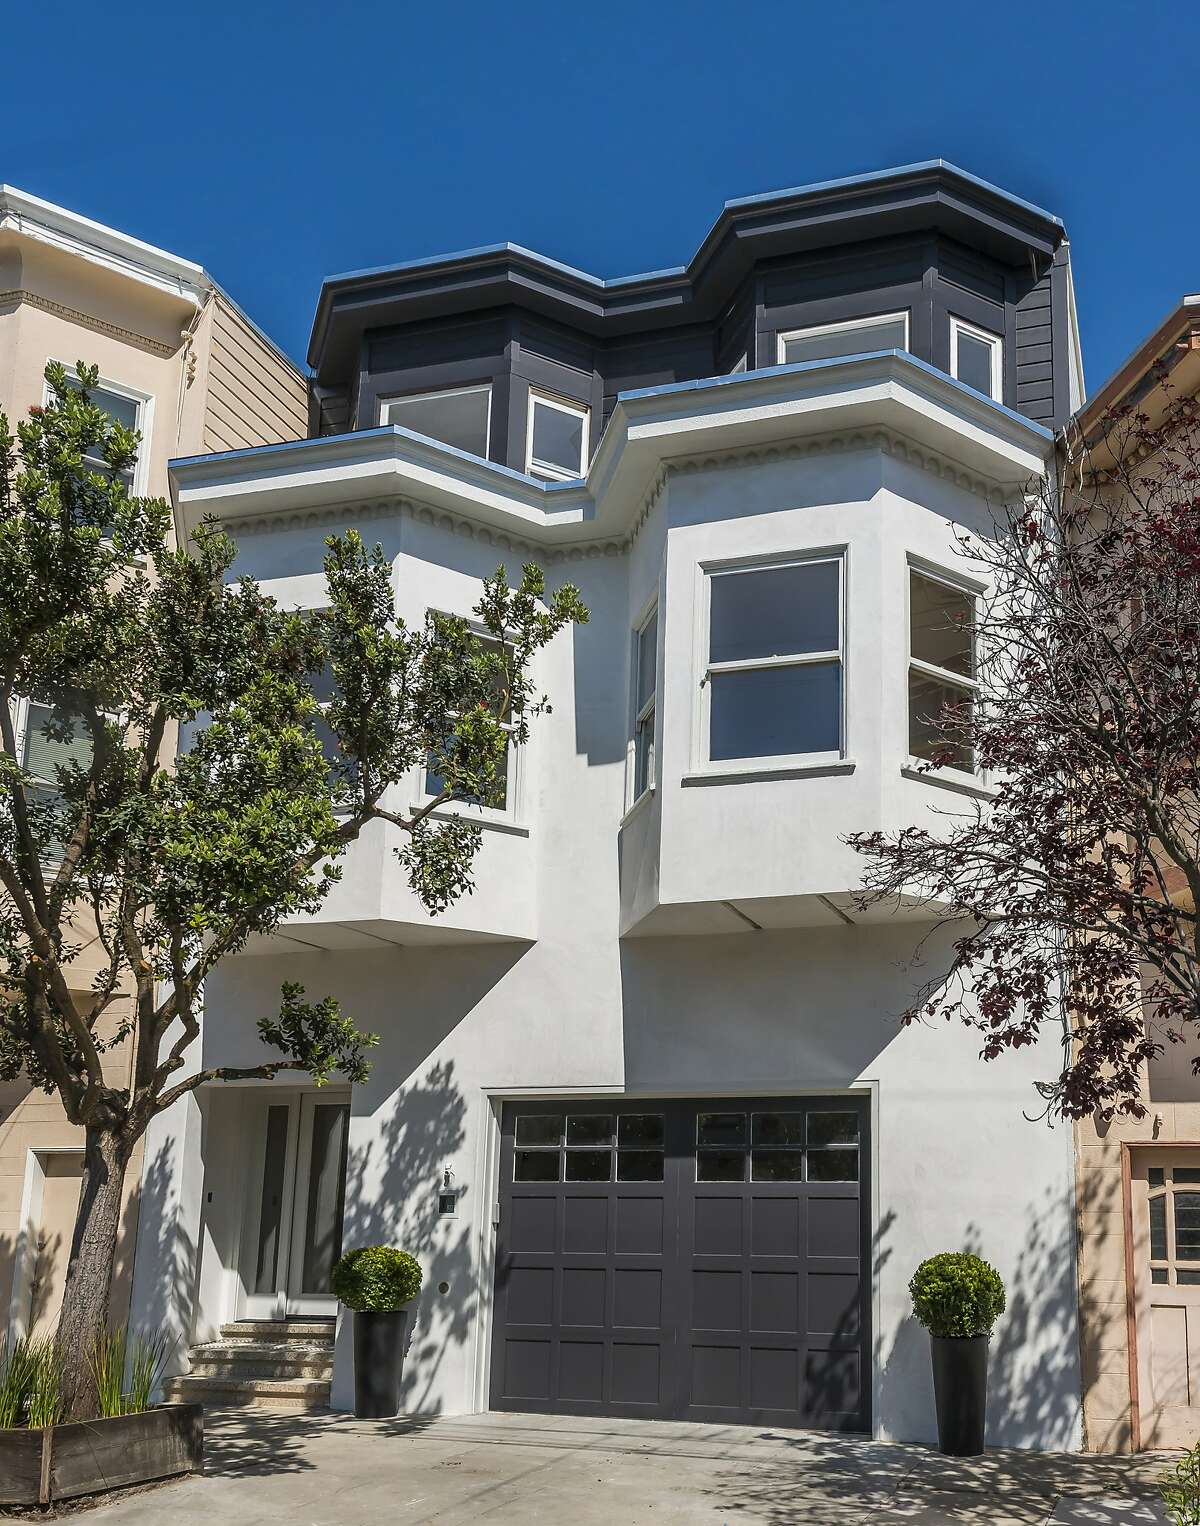 The Noe Valley home at 470 Alvarado St. retains Edwardian finishes like bay windows. Click here to see other Noe Valley listings.